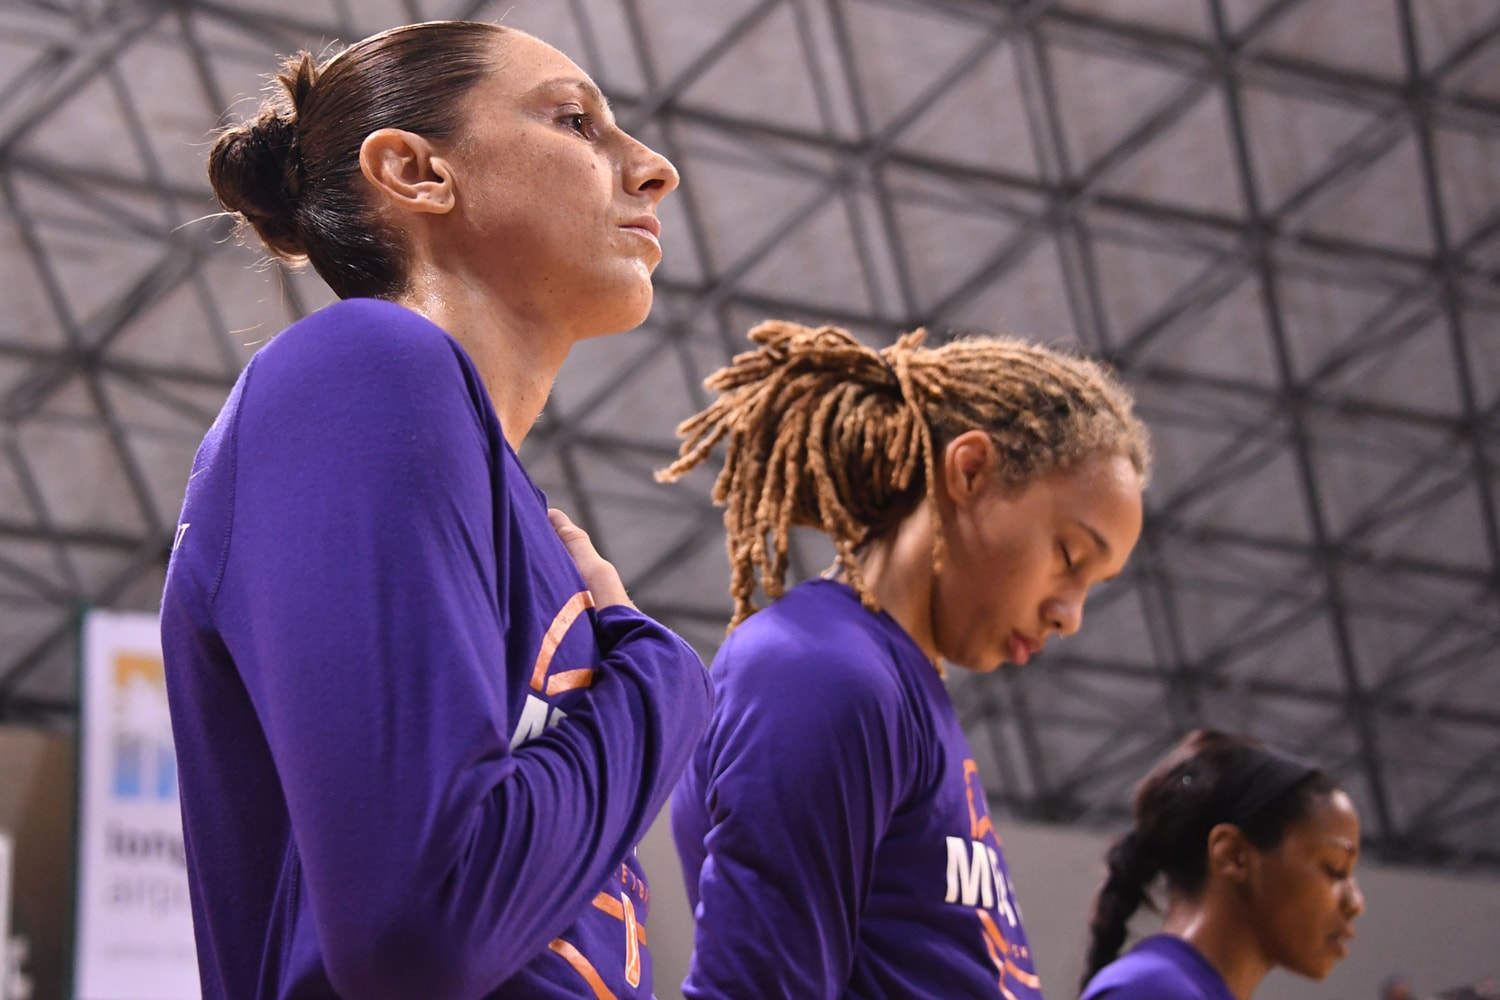 Phoenix Mercury v Los Angeles Sparks - Game Two: Taurasi and Griner during the anthem